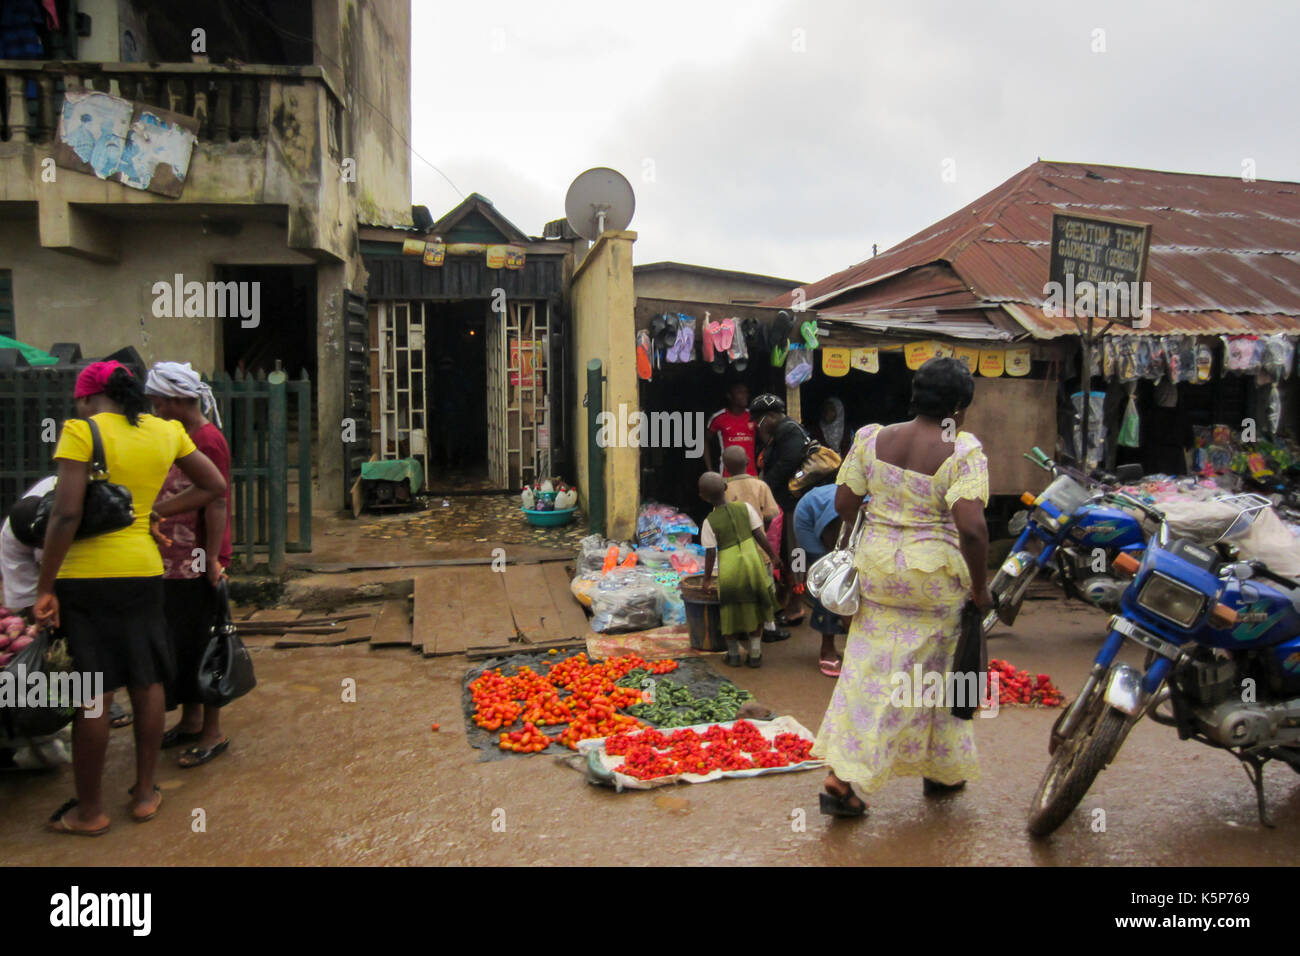 People selling different goods in the street in the city of Lagos, the largest city in Nigeria and the African co - Stock Image